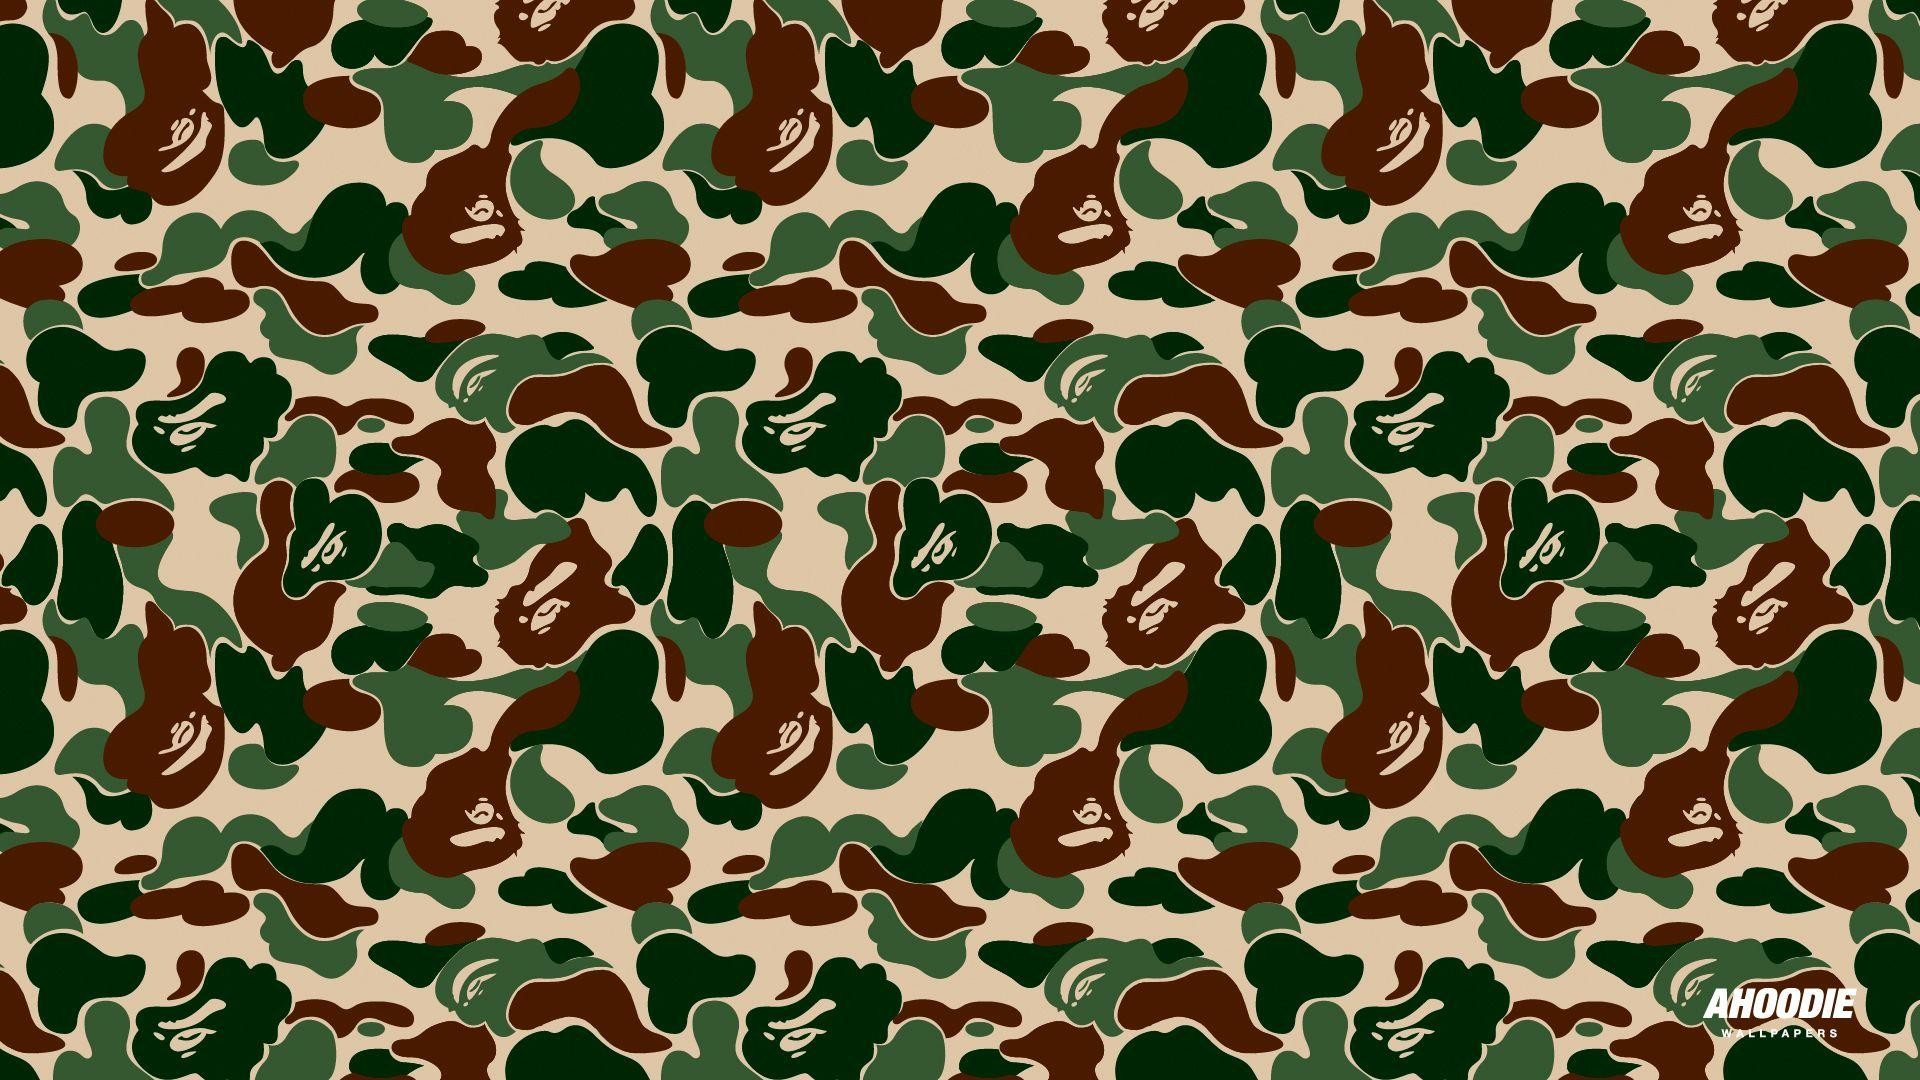 Res: 1920x1080, Bathing Ape Wallpaper - WallpaperSafari